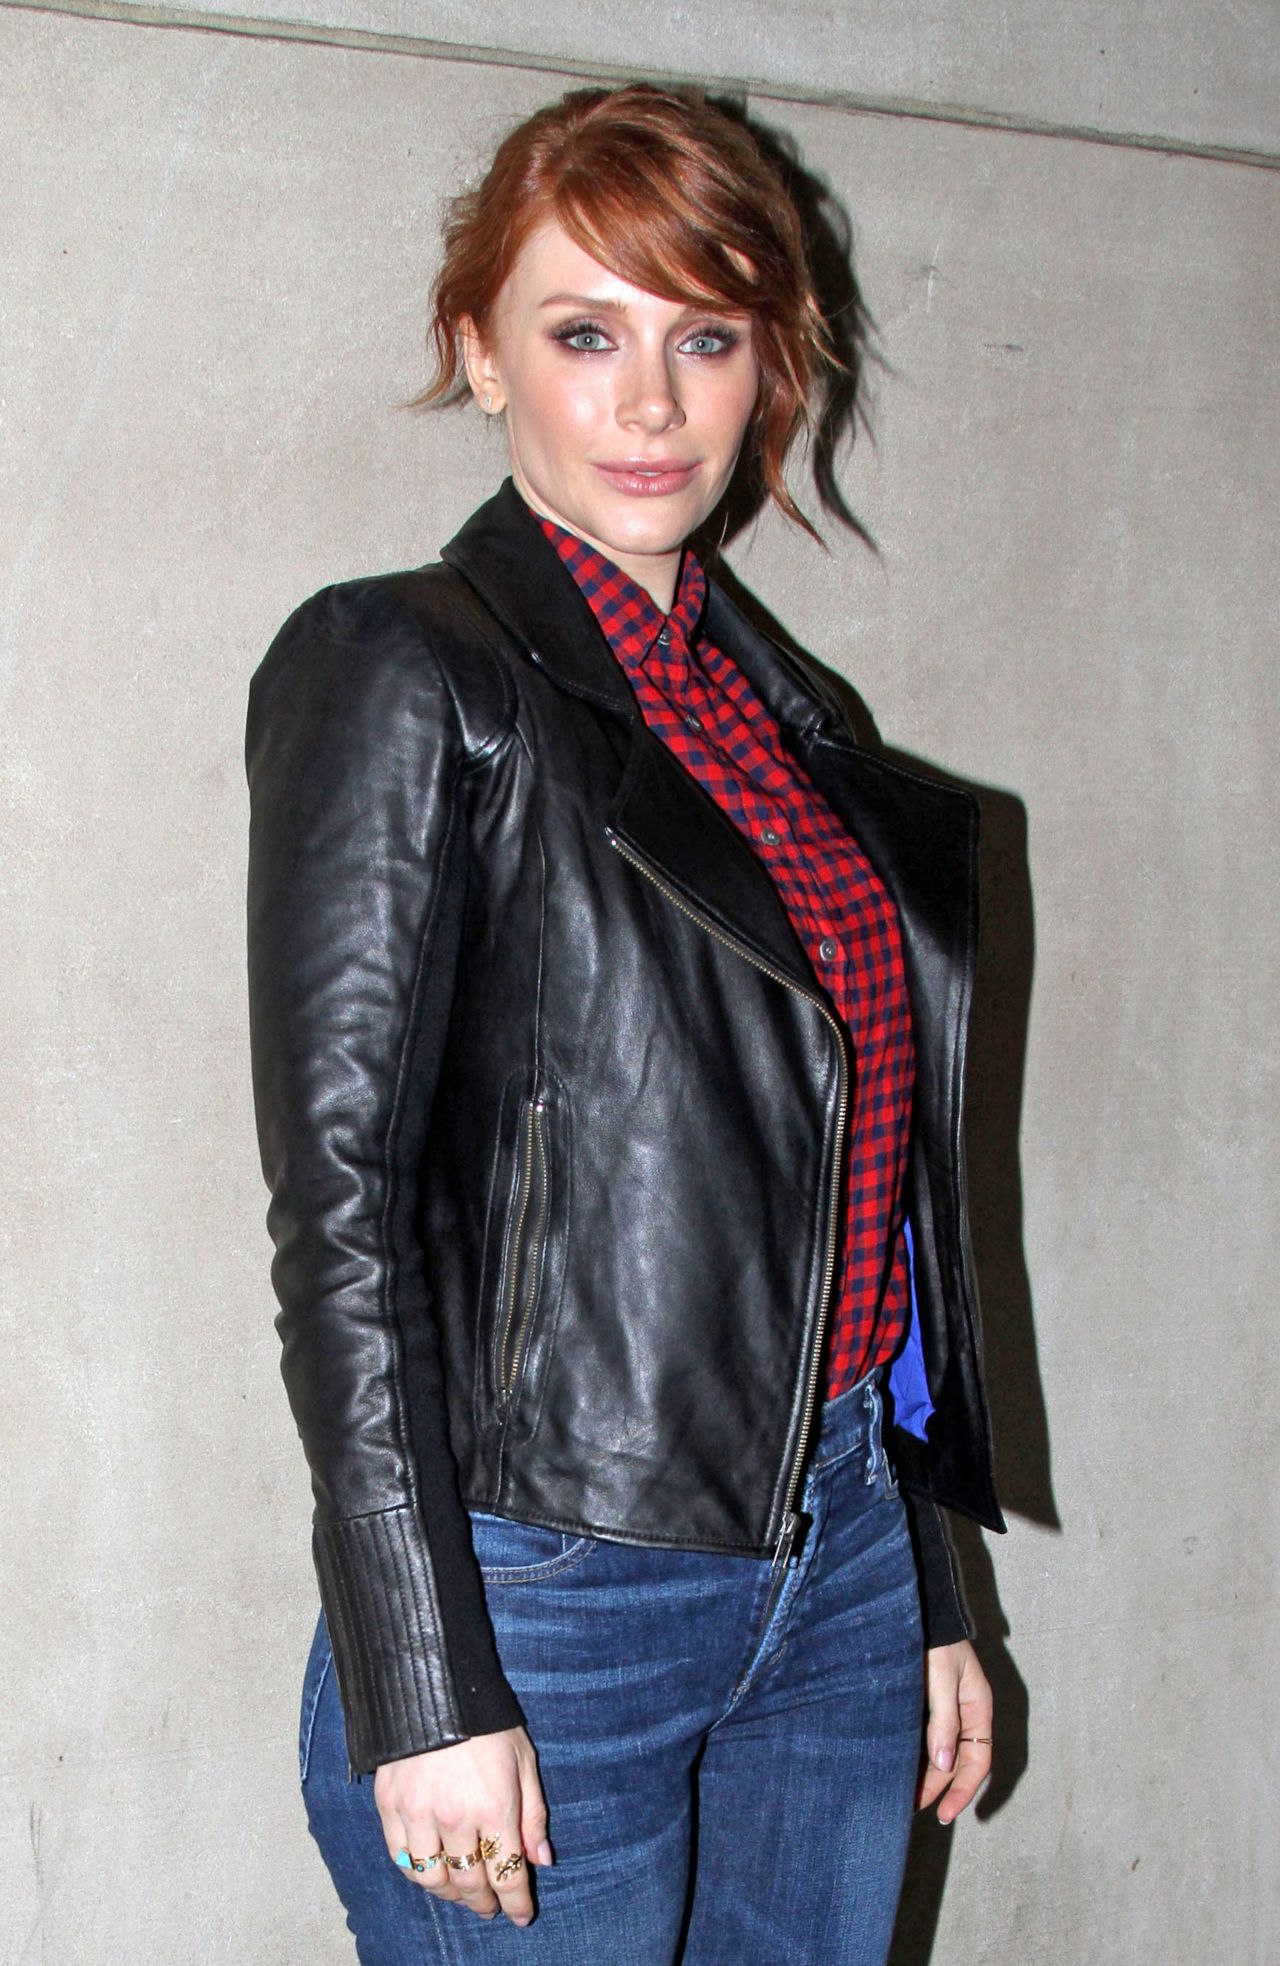 Bryce Dallas Howard Outside Today Show June 2015